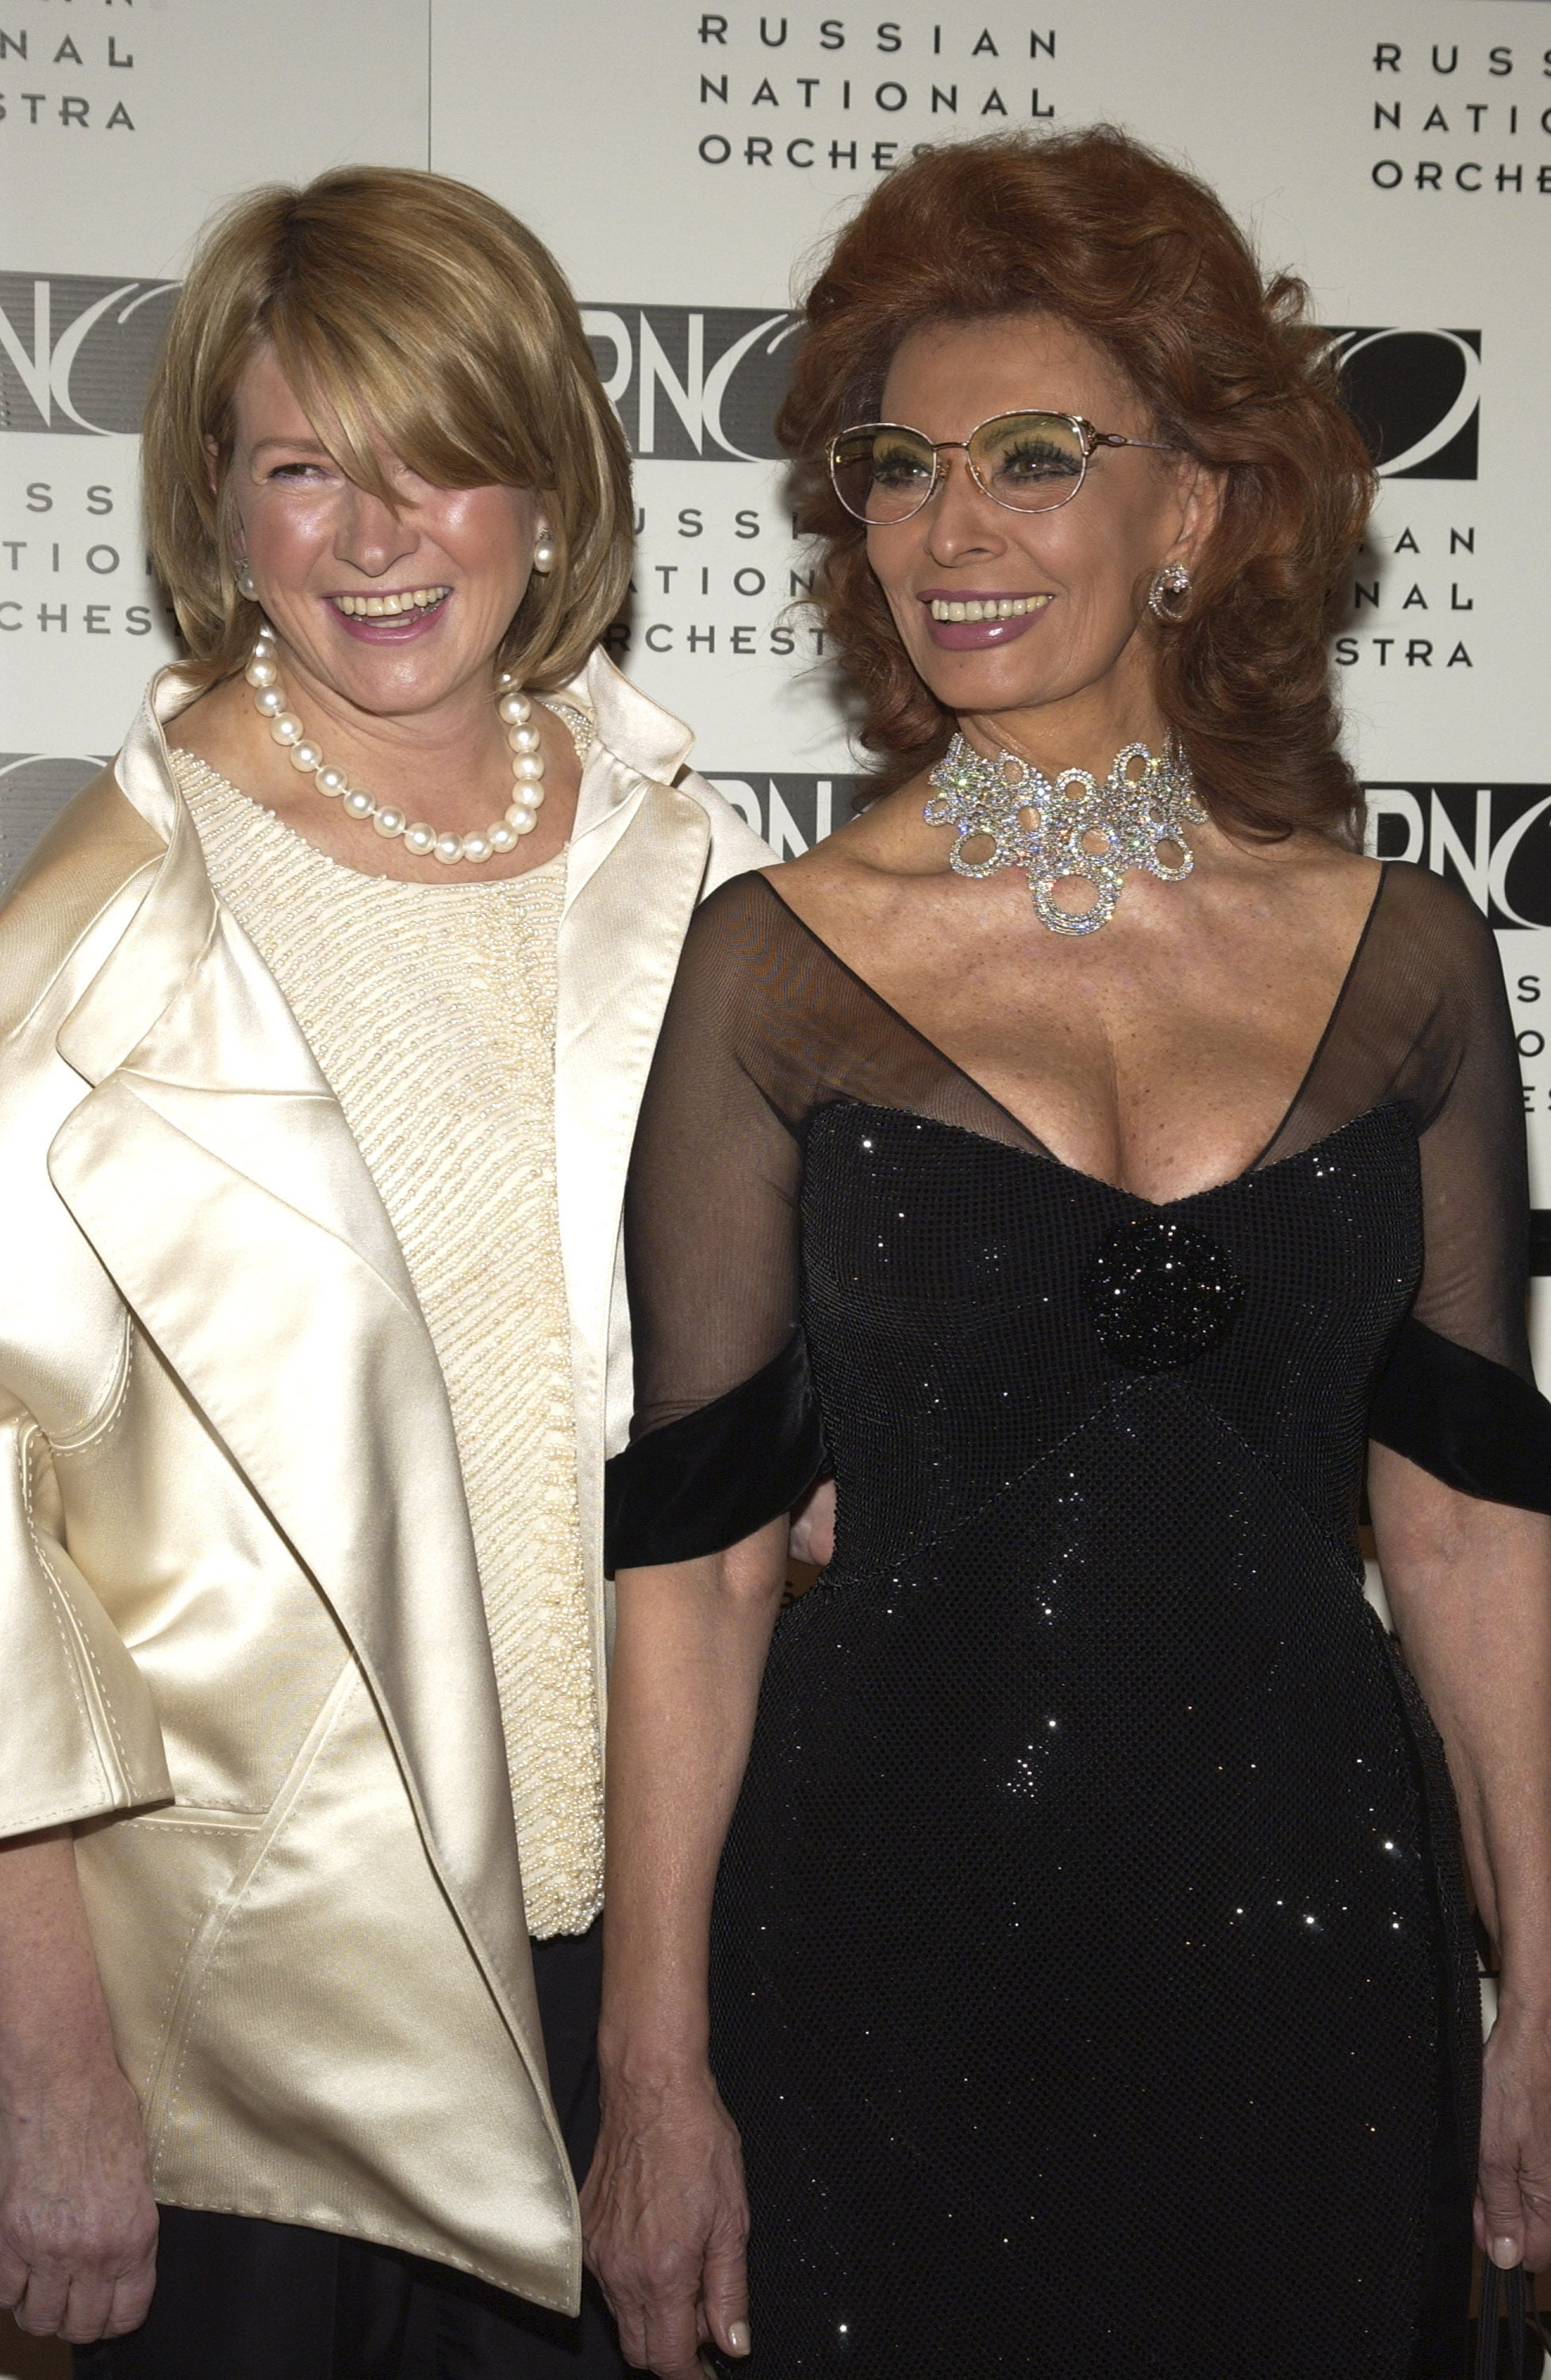 3. That Time She Was Impossibly Chic With Sophia Loren